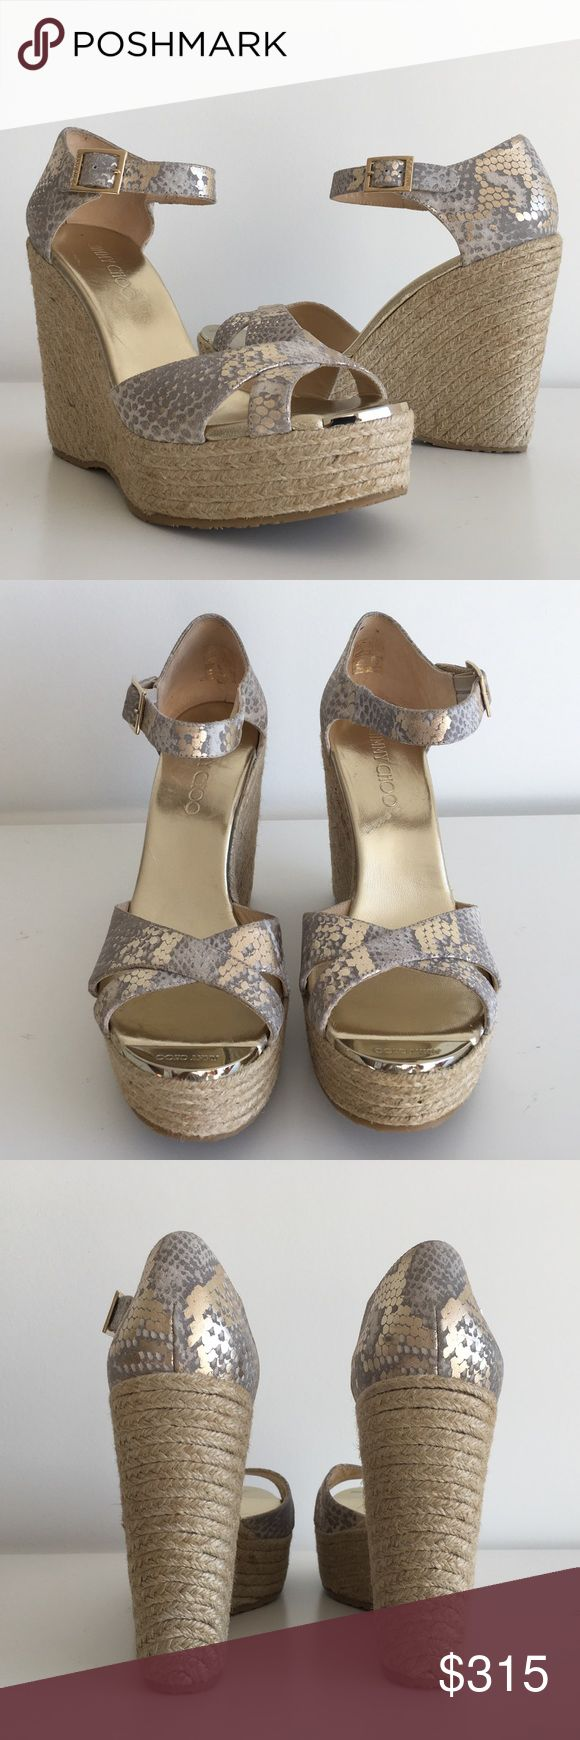 "JIMMY CHOO PALLIS WEDGE METALLIC ESPADRILLES SZ 41 JIMMY CHOO PALLIS WEDGE METALLIC ESPADRILLES, SIZE 41, WEDGE 5"", PLATFORM 1.5"", ADJUSTABLE STRAP WITH BUCKLE CLOSURE, PEEP TOE, METALLIC SNAKE PRINT, SYNTHETIC SOLE, BRAND NEW WITH BOX AND DUST BAG Jimmy Choo Shoes Platforms"